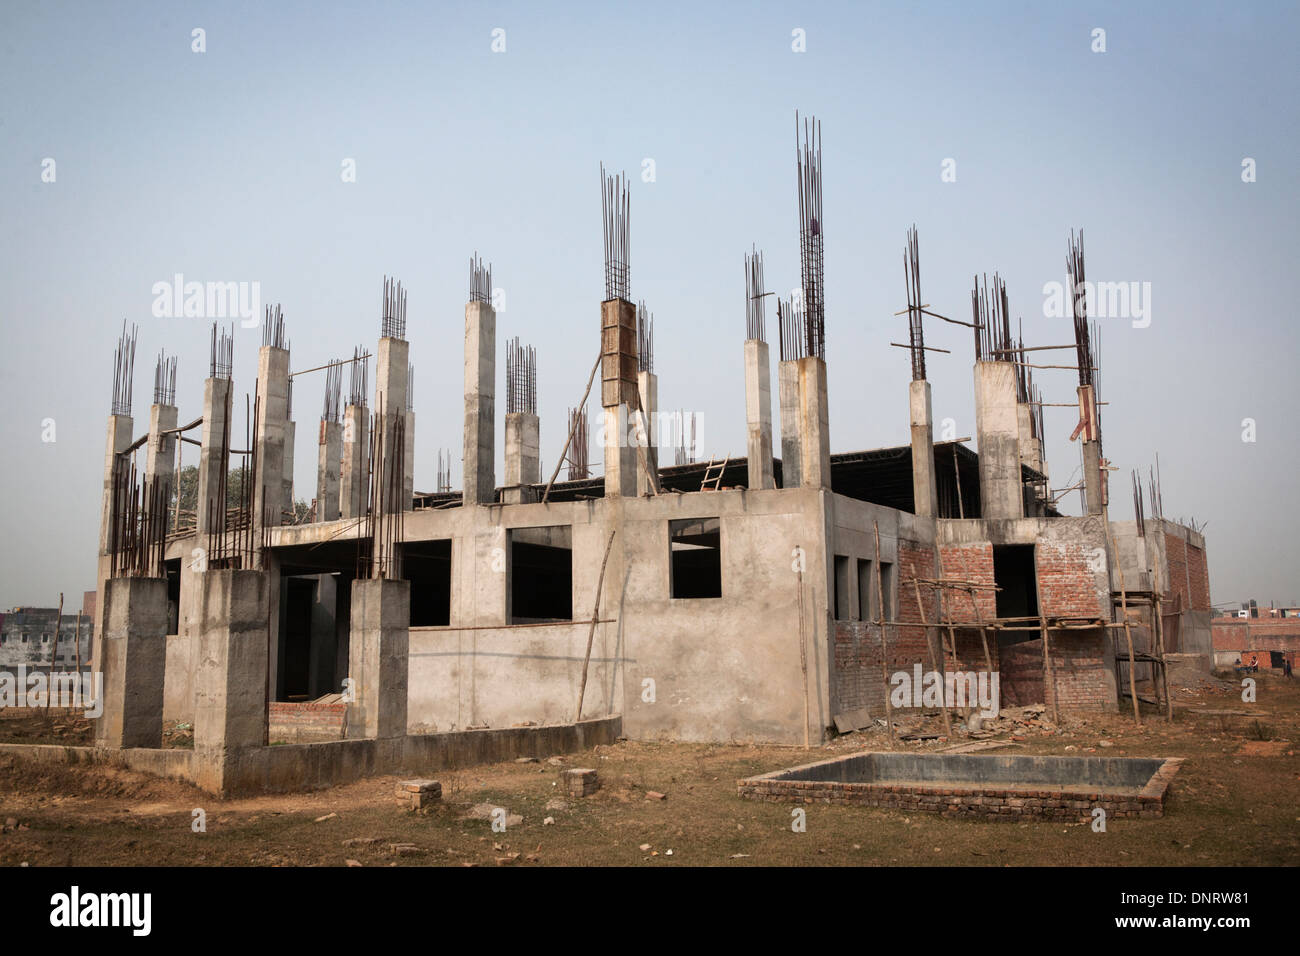 An unfinished but seemingly abandoned building in Sarnath, Uttar Pradesh, India. - Stock Image